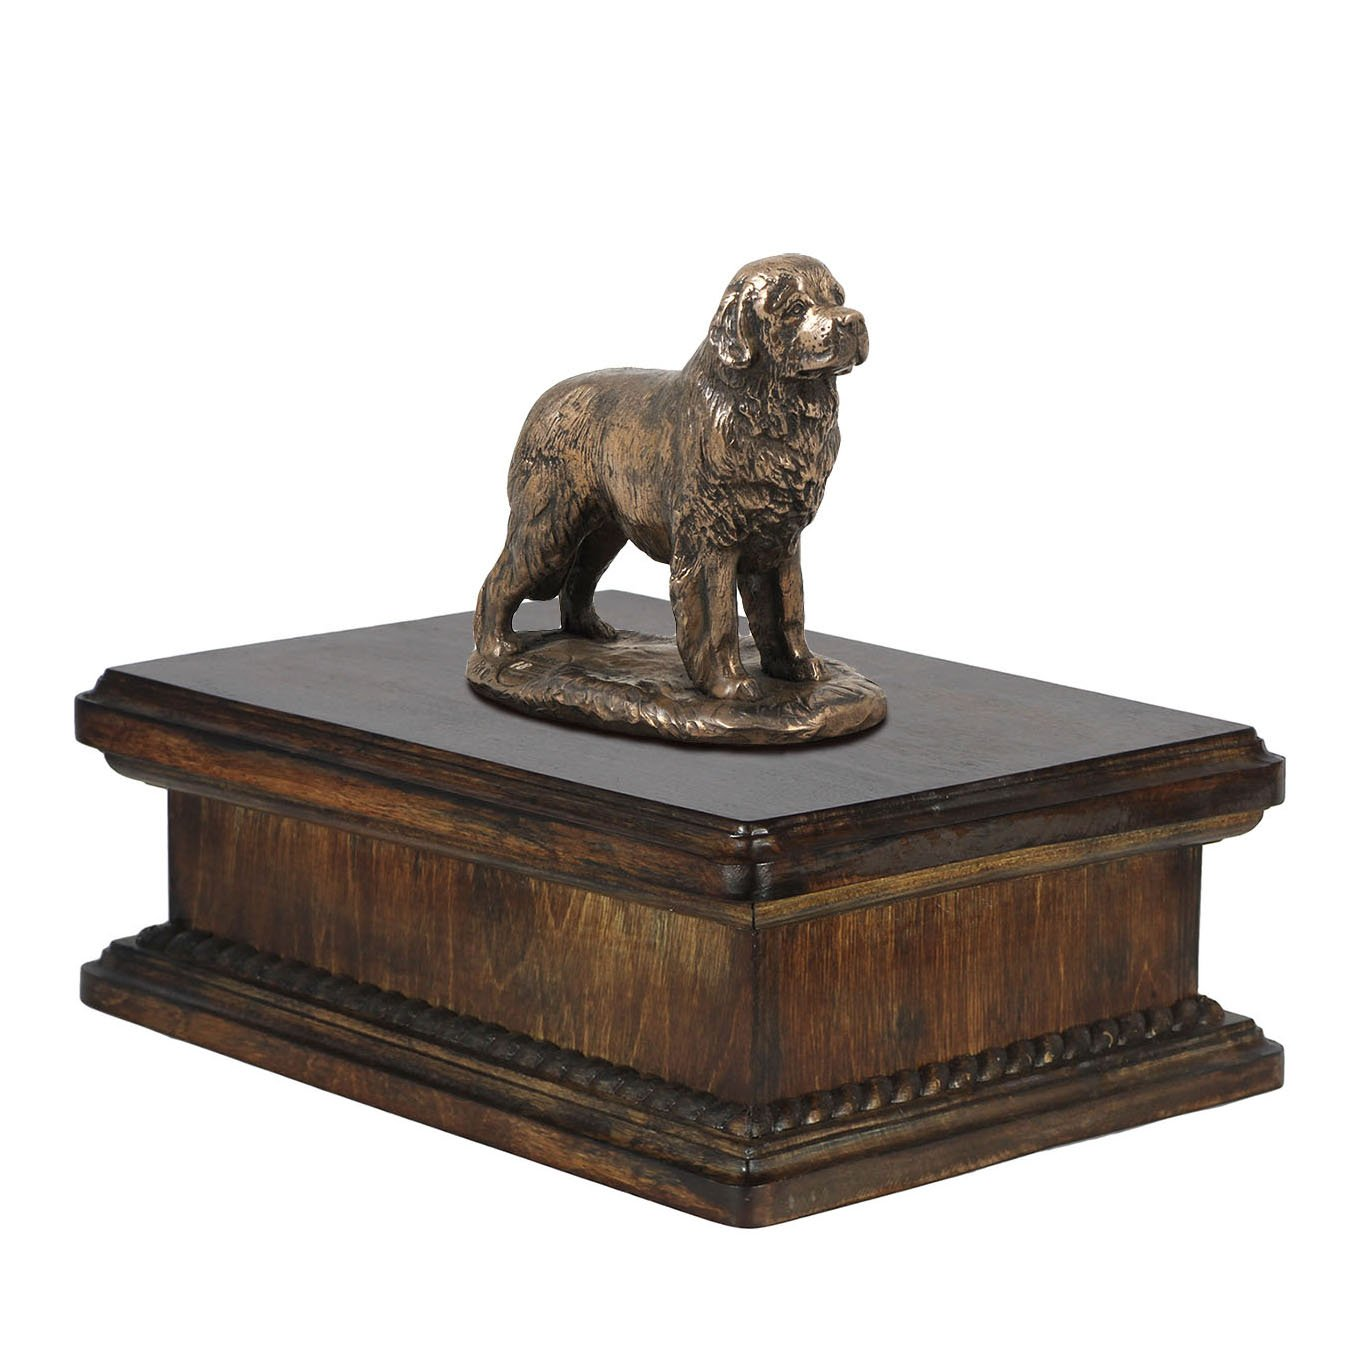 Newfoundland, memorial, urn for dog's ashes, with dog statue, exclusive, ArtDog